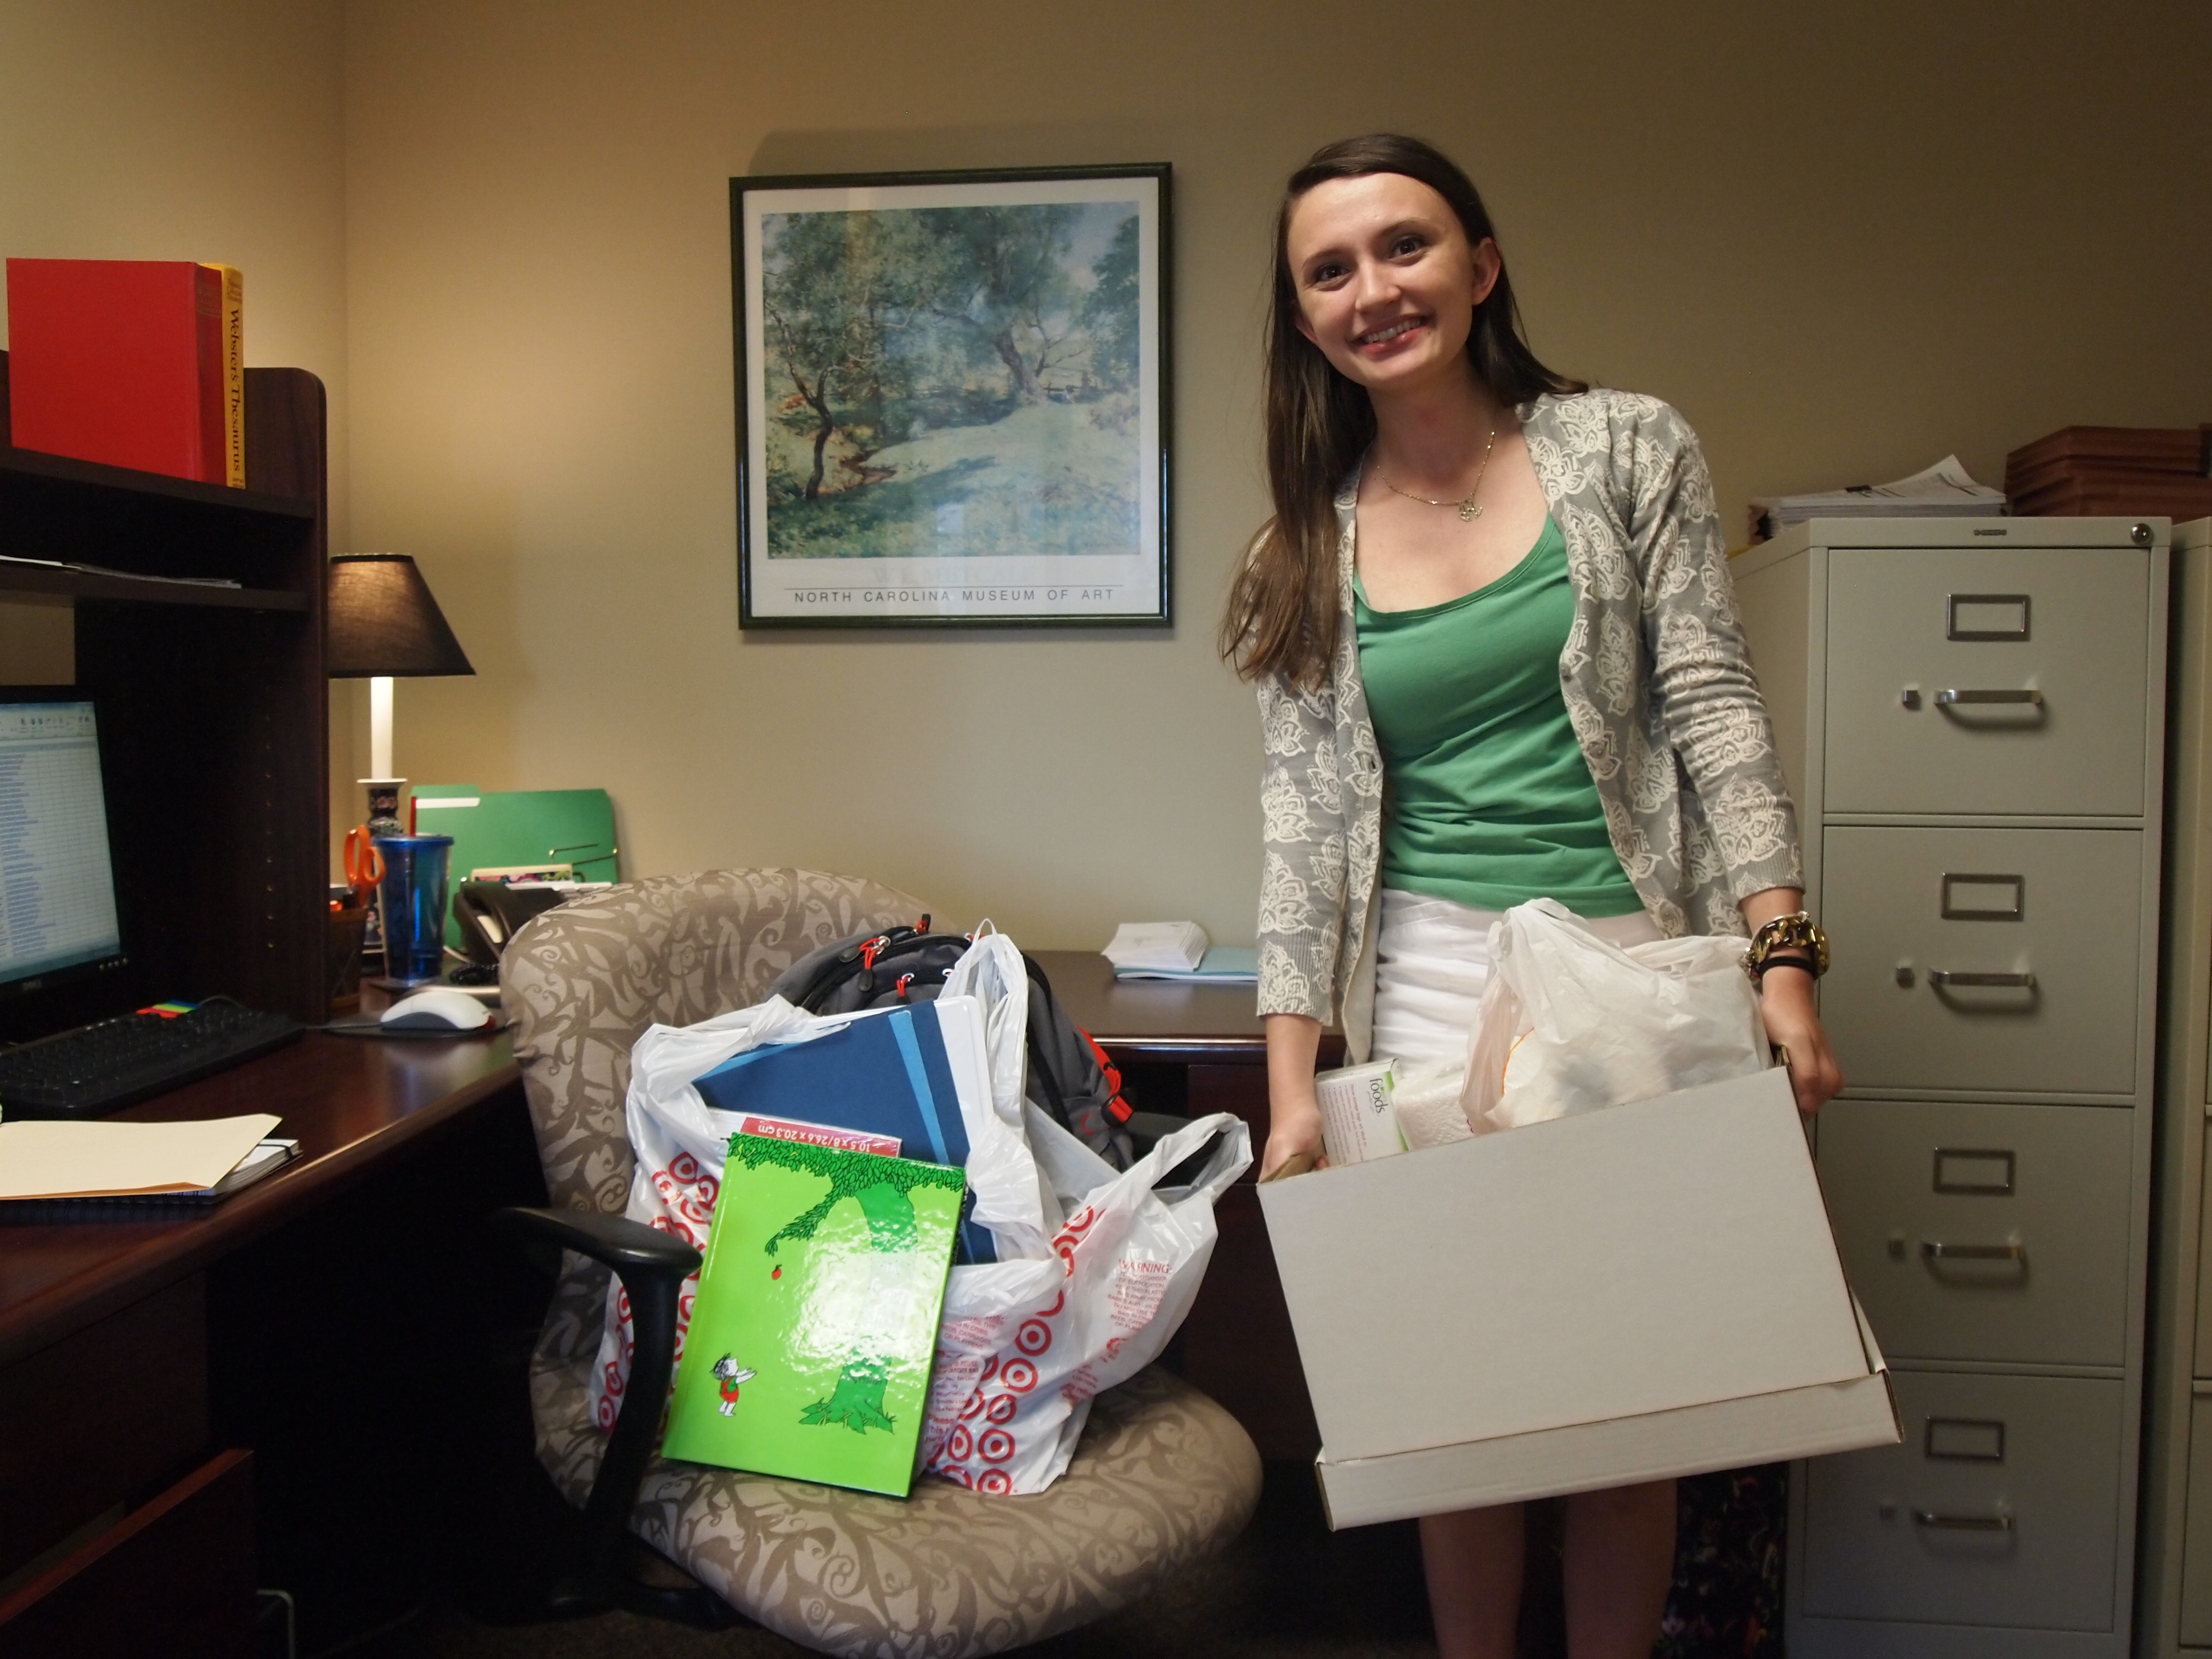 Brittaney Rea, NCCF intern, spearheaded our collection of school supplies for a child in need.